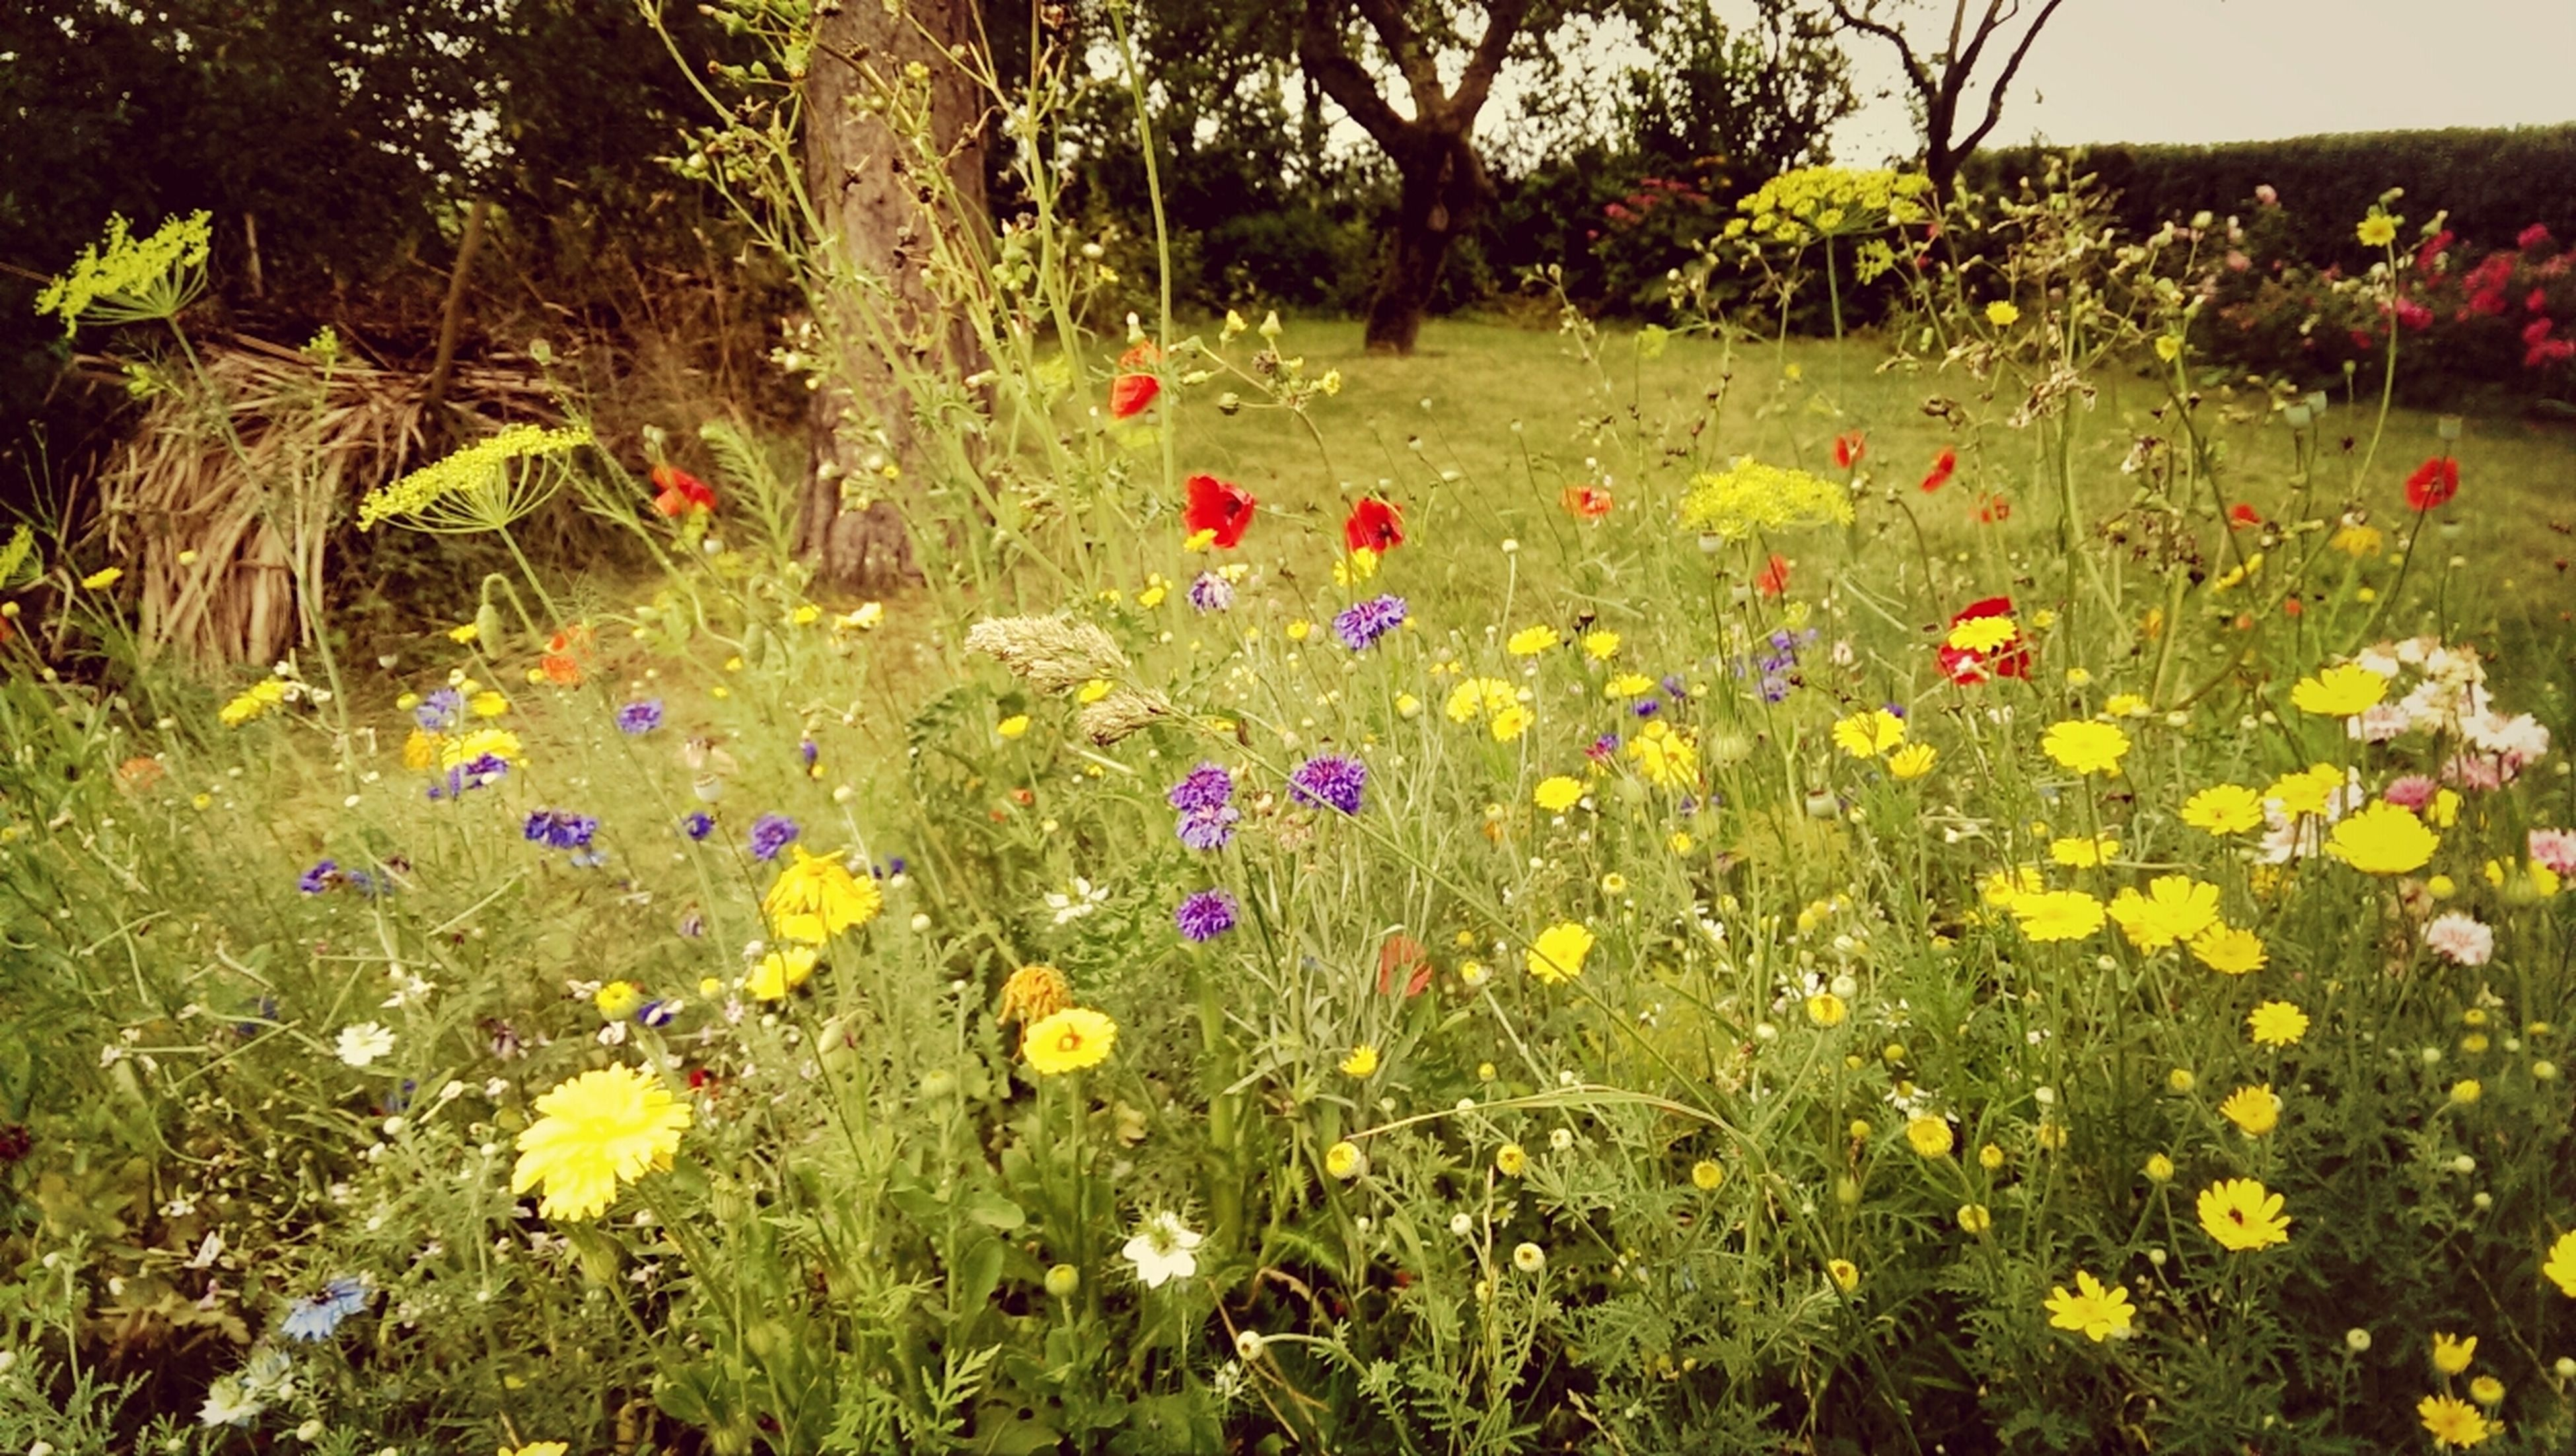 flower, growth, freshness, beauty in nature, plant, field, fragility, blooming, nature, grass, in bloom, petal, green color, tranquility, tree, tranquil scene, multi colored, landscape, yellow, wildflower